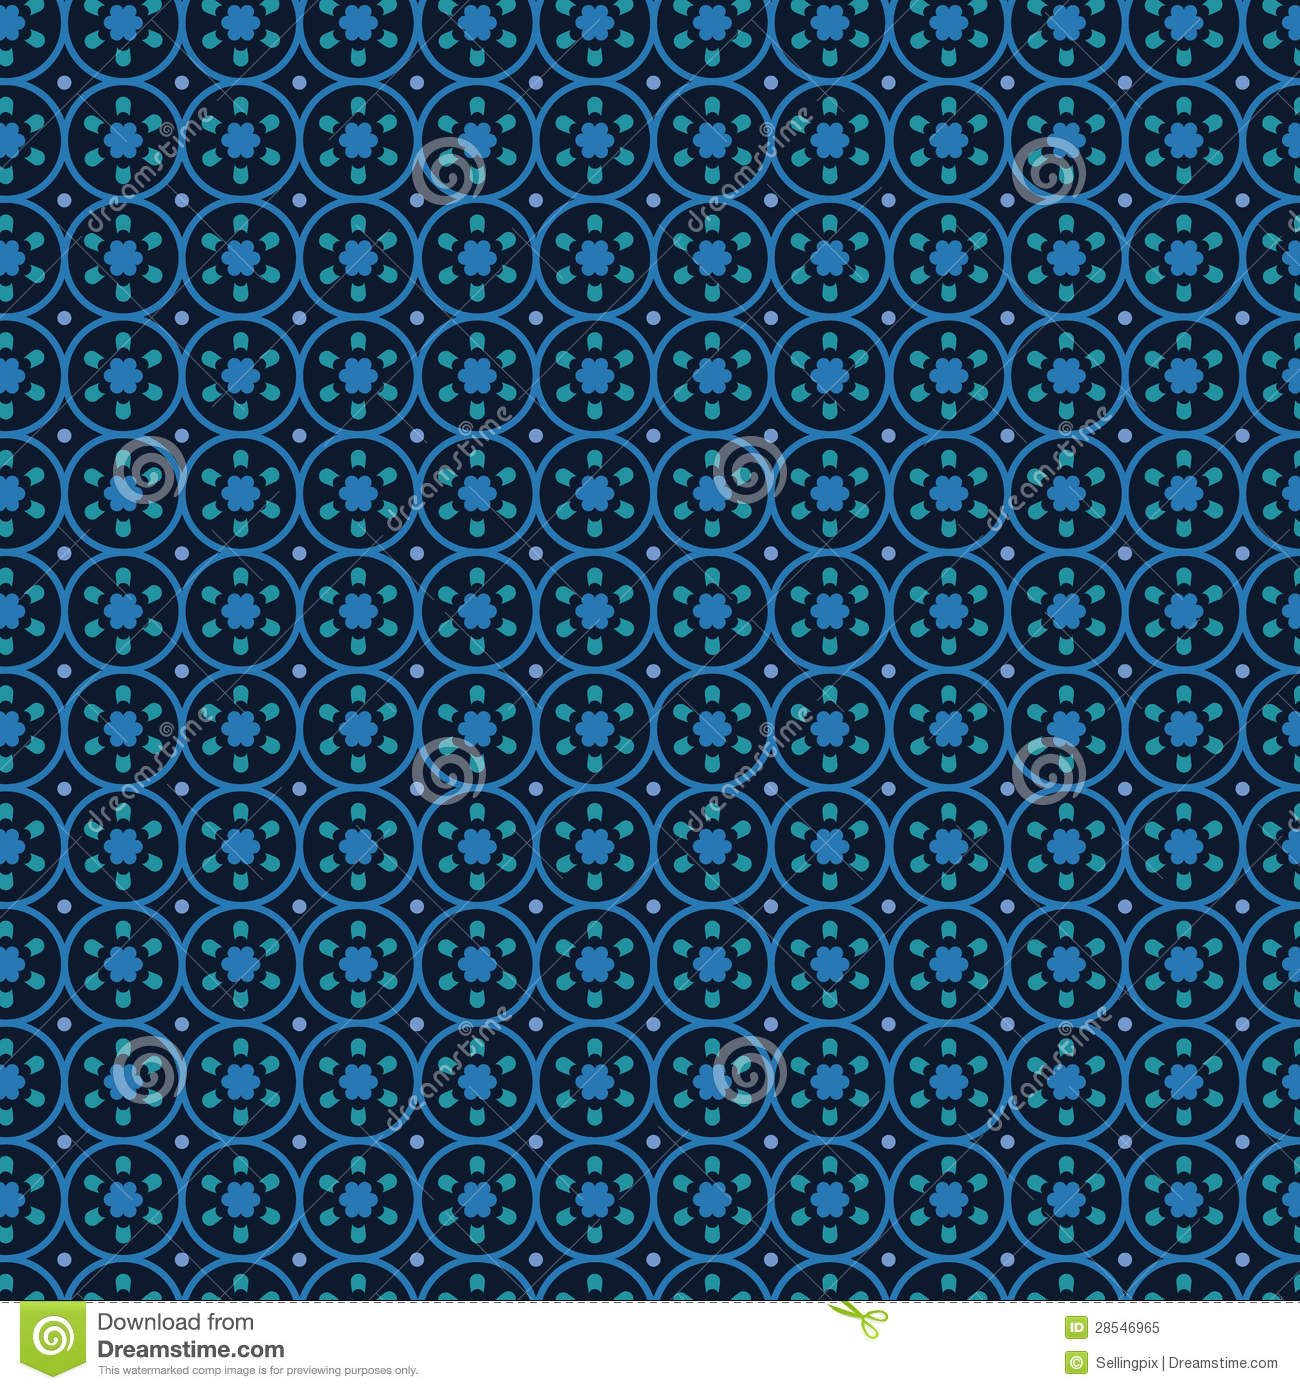 Circles background abstract vector.